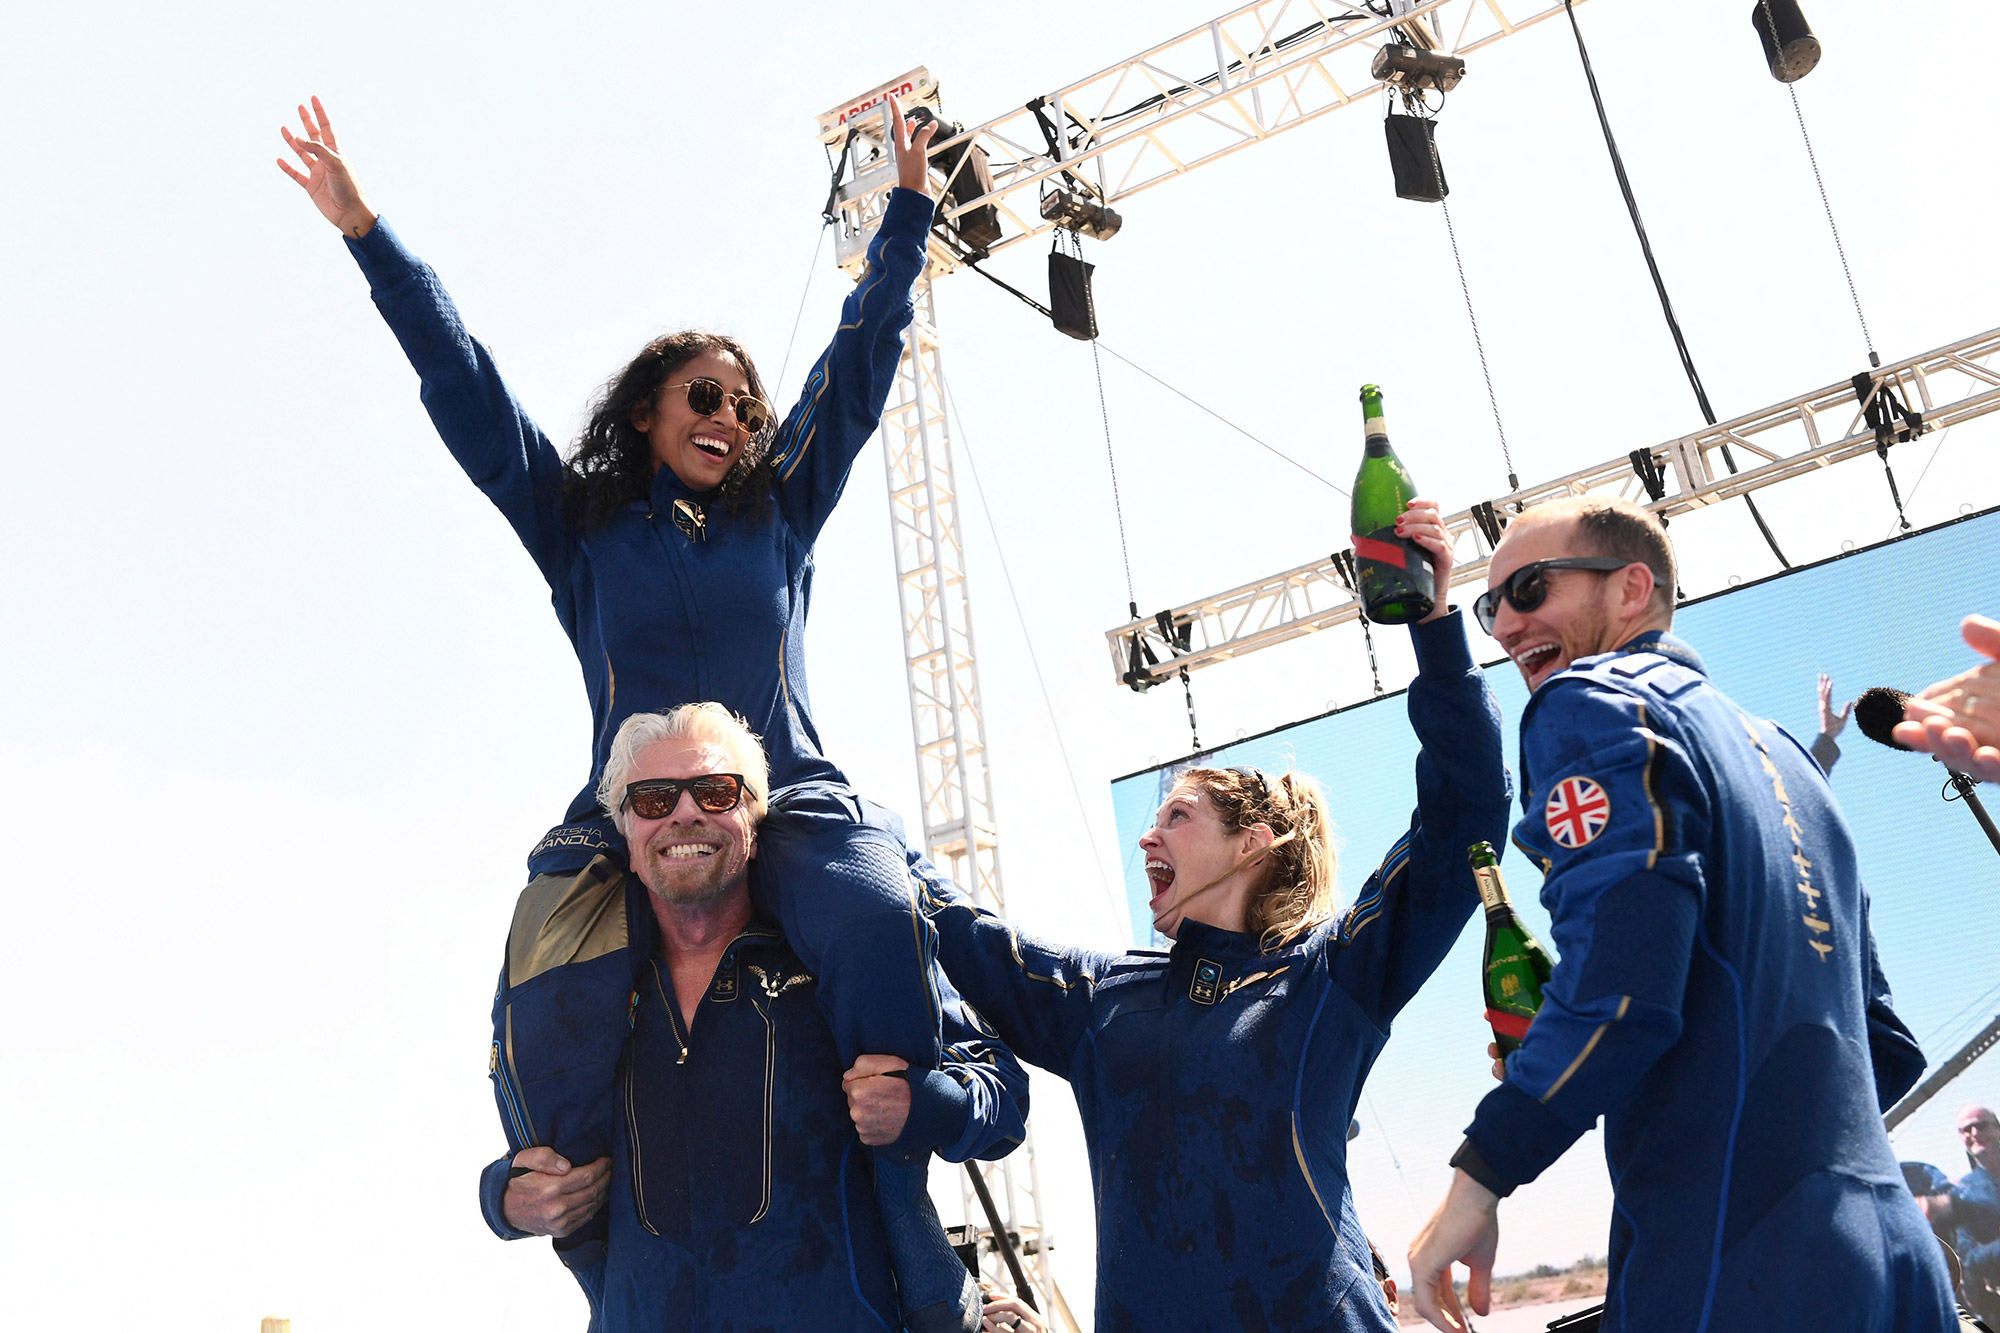 """Virgin Galactic founder Sir Richard Branson(L), with Sirisha Bandla on his shoulders, cheers with crew members after flying into space aboard a Virgin Galactic vessel, a voyage he described as the """"experience of a lifetime"""" -- and one he hopes will usher in an era of lucrative space tourism at Spaceport America, near Truth and Consequences, New Mexico on July 11, 2021. -"""